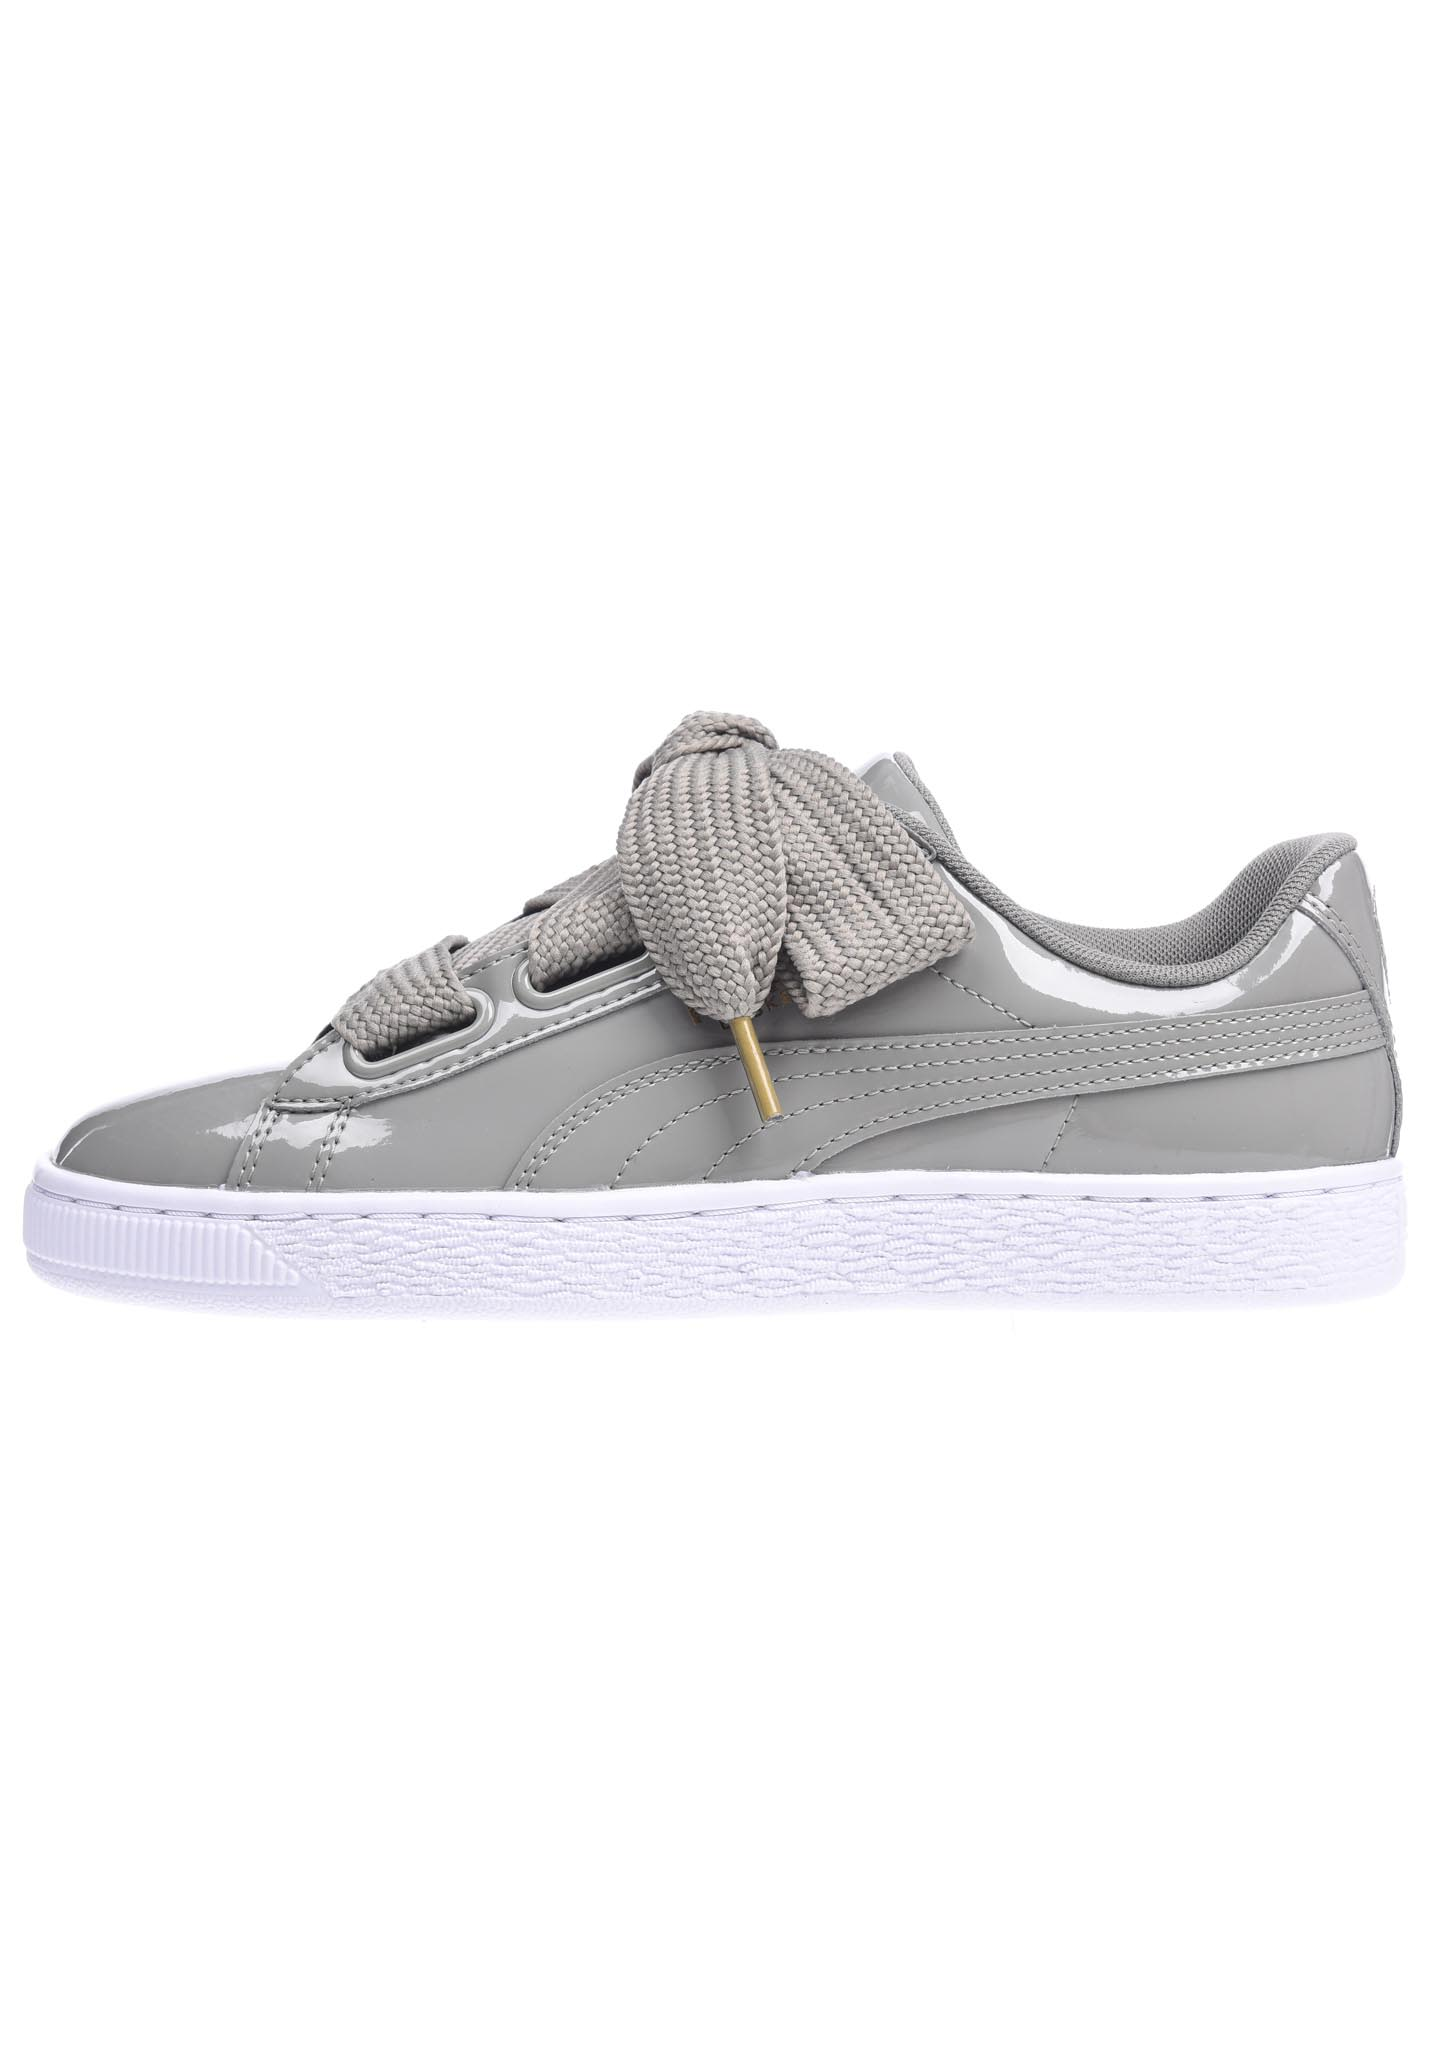 Puma Basket Heart Patent - Sneakers for Women - Grey - Planet Sports dc0e23254